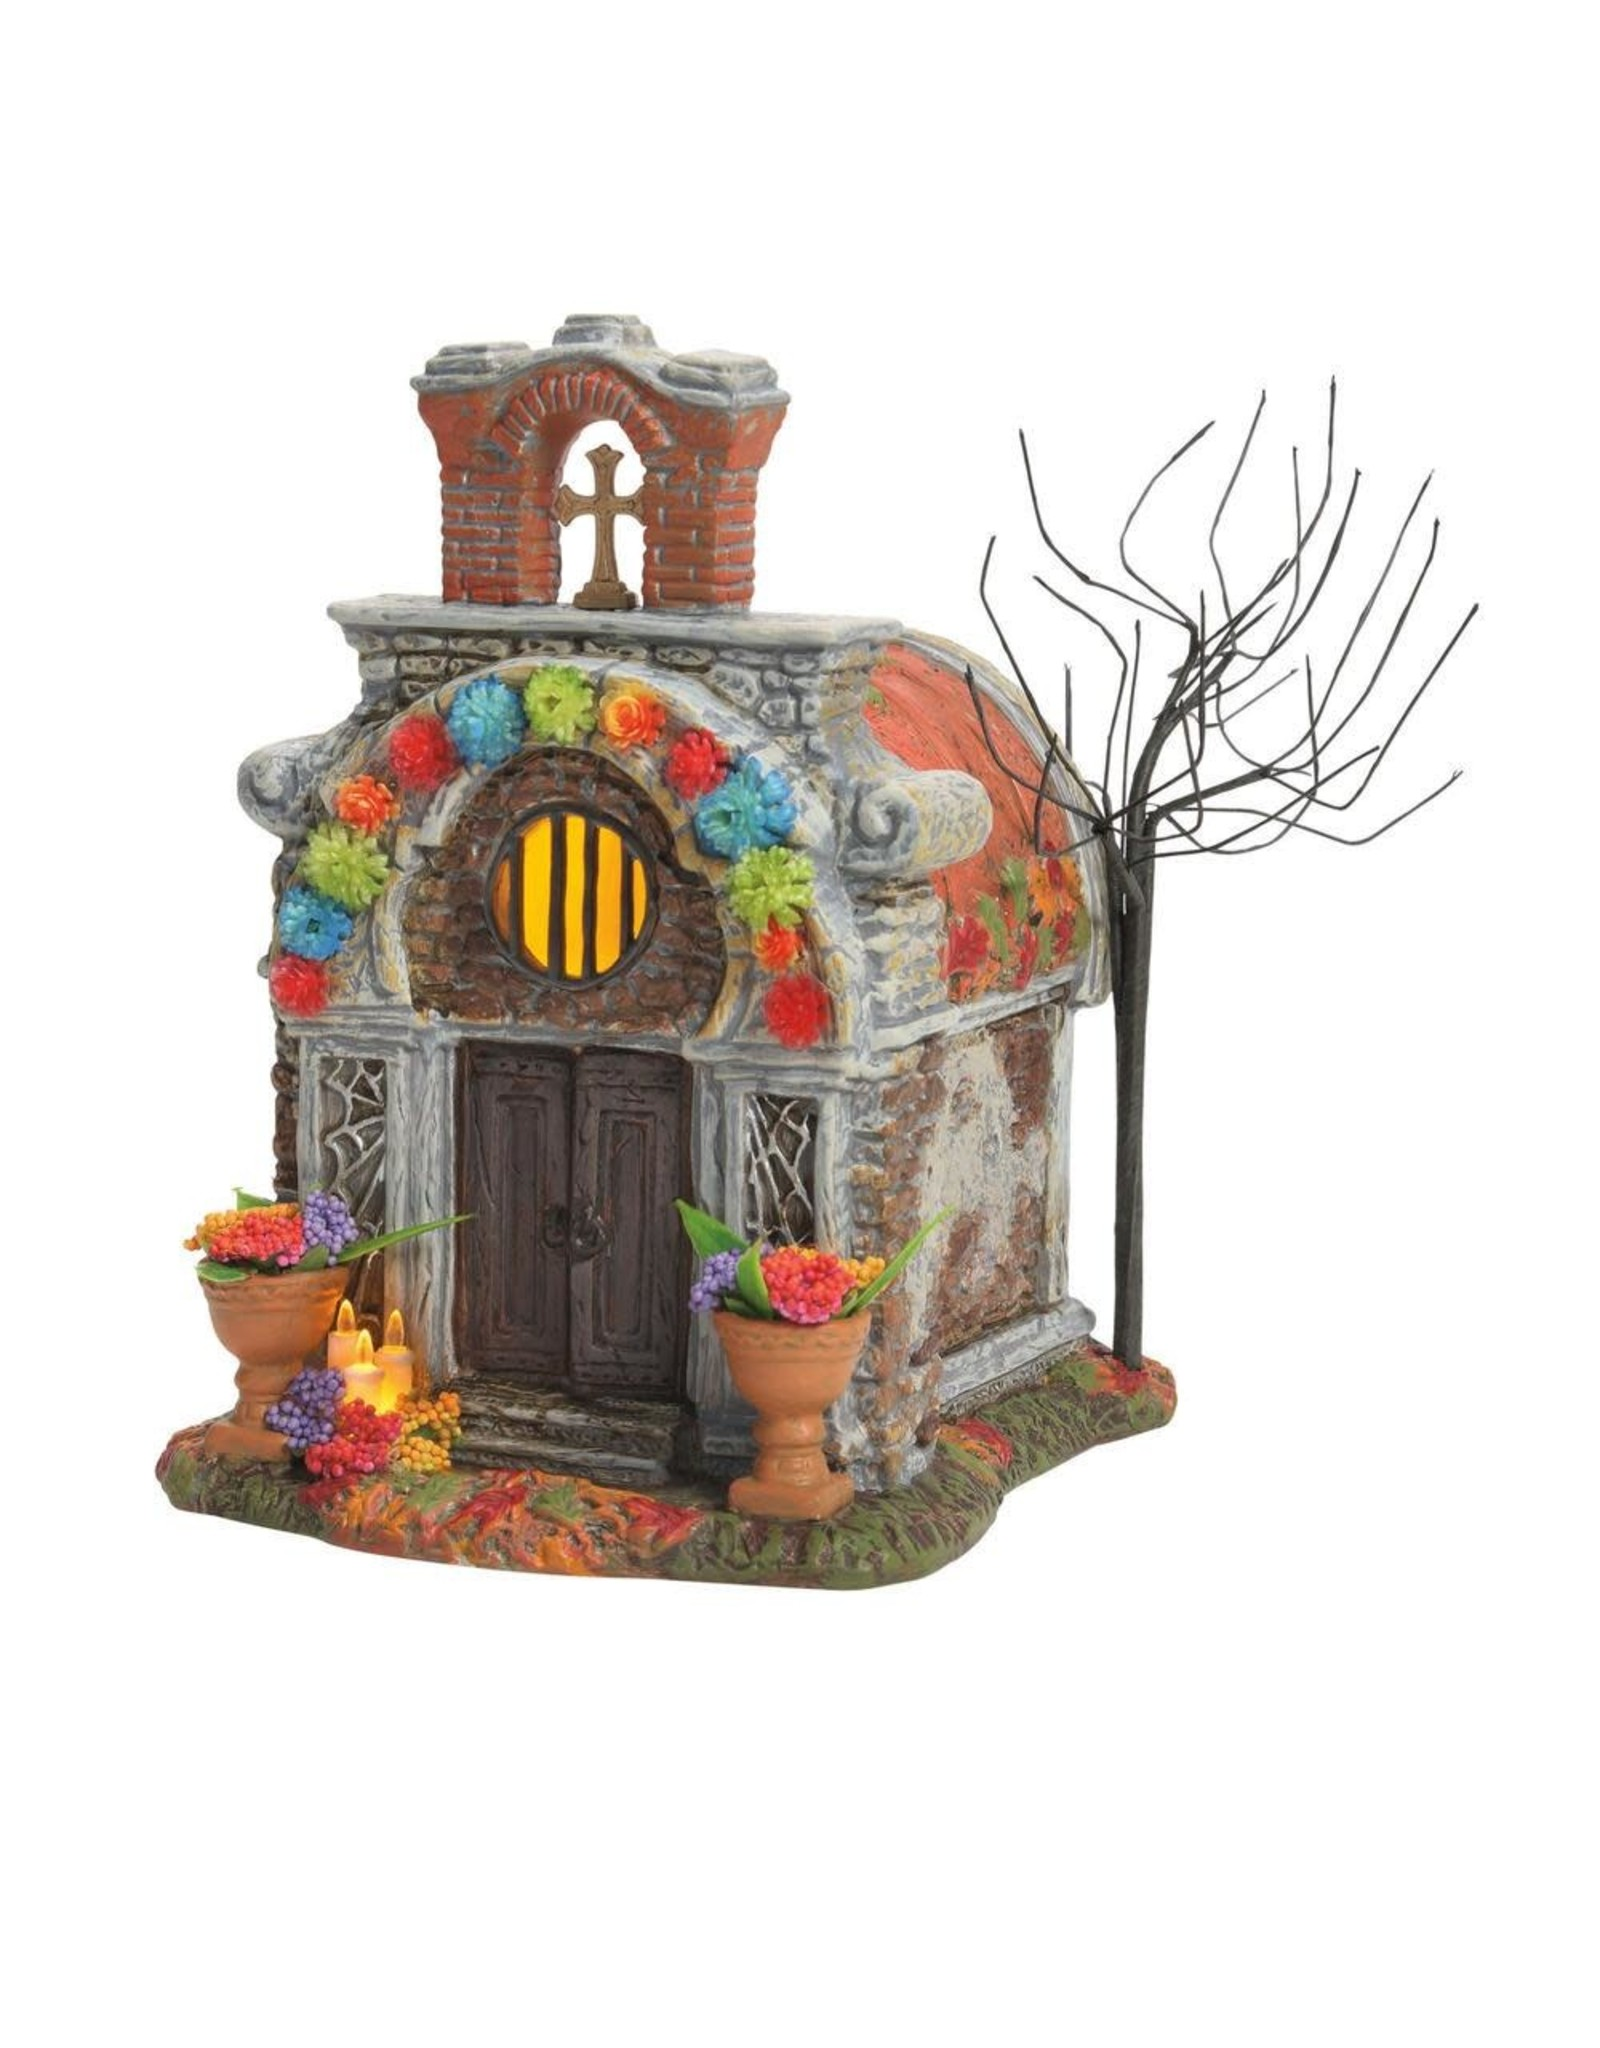 Department 56 Day of the Dead Crypt